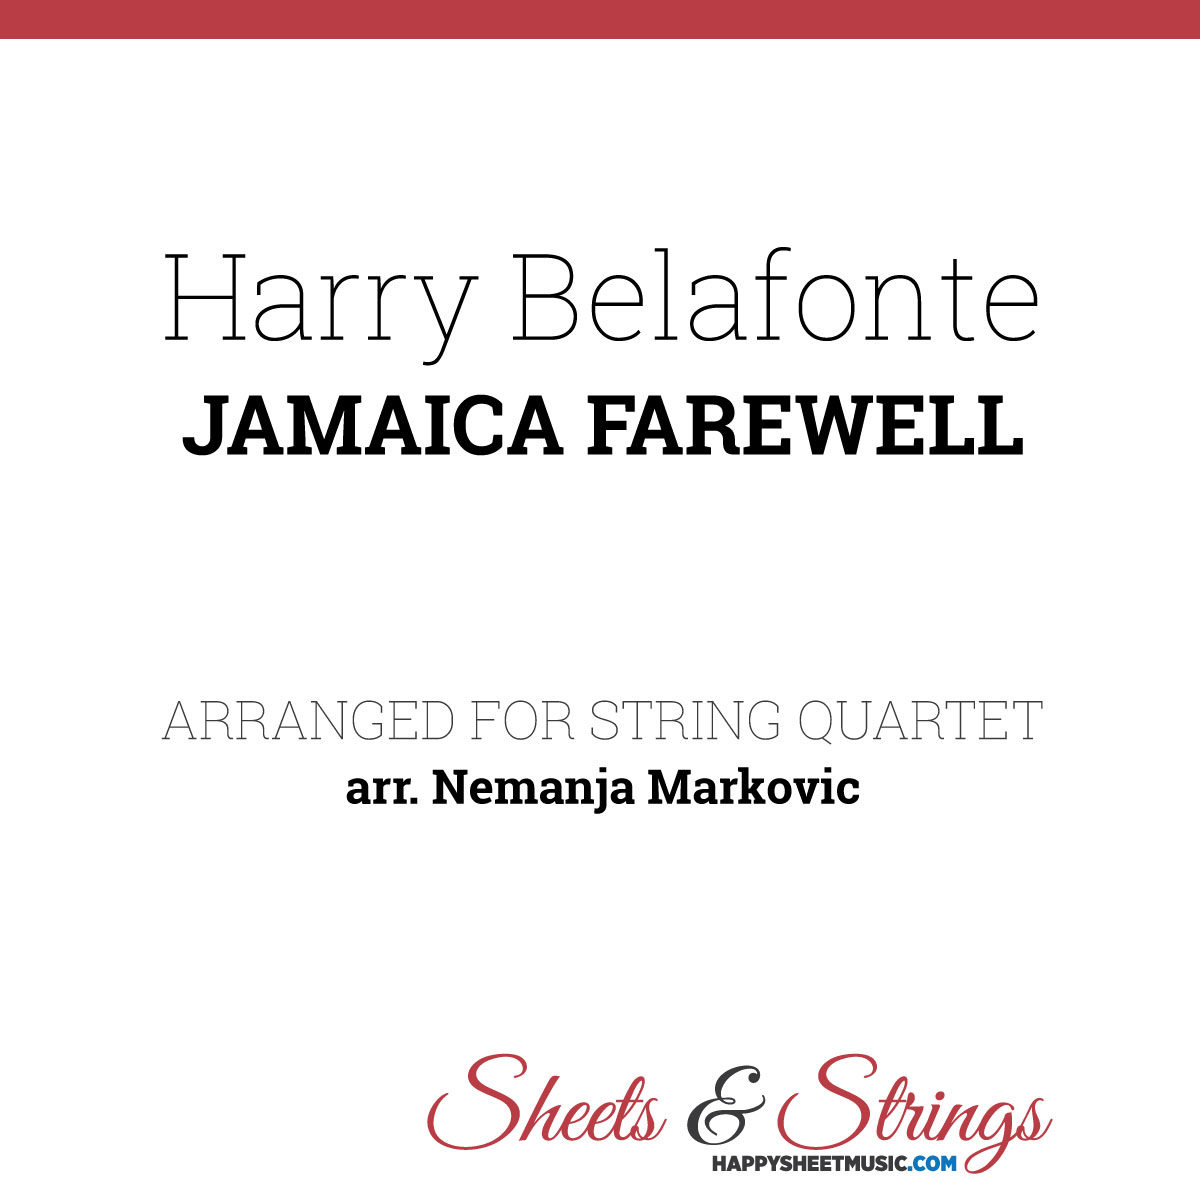 Harry Belafonte - Jamaica Farewell - Sheet Music for String Quartet - Music Arrangement for String Quartet